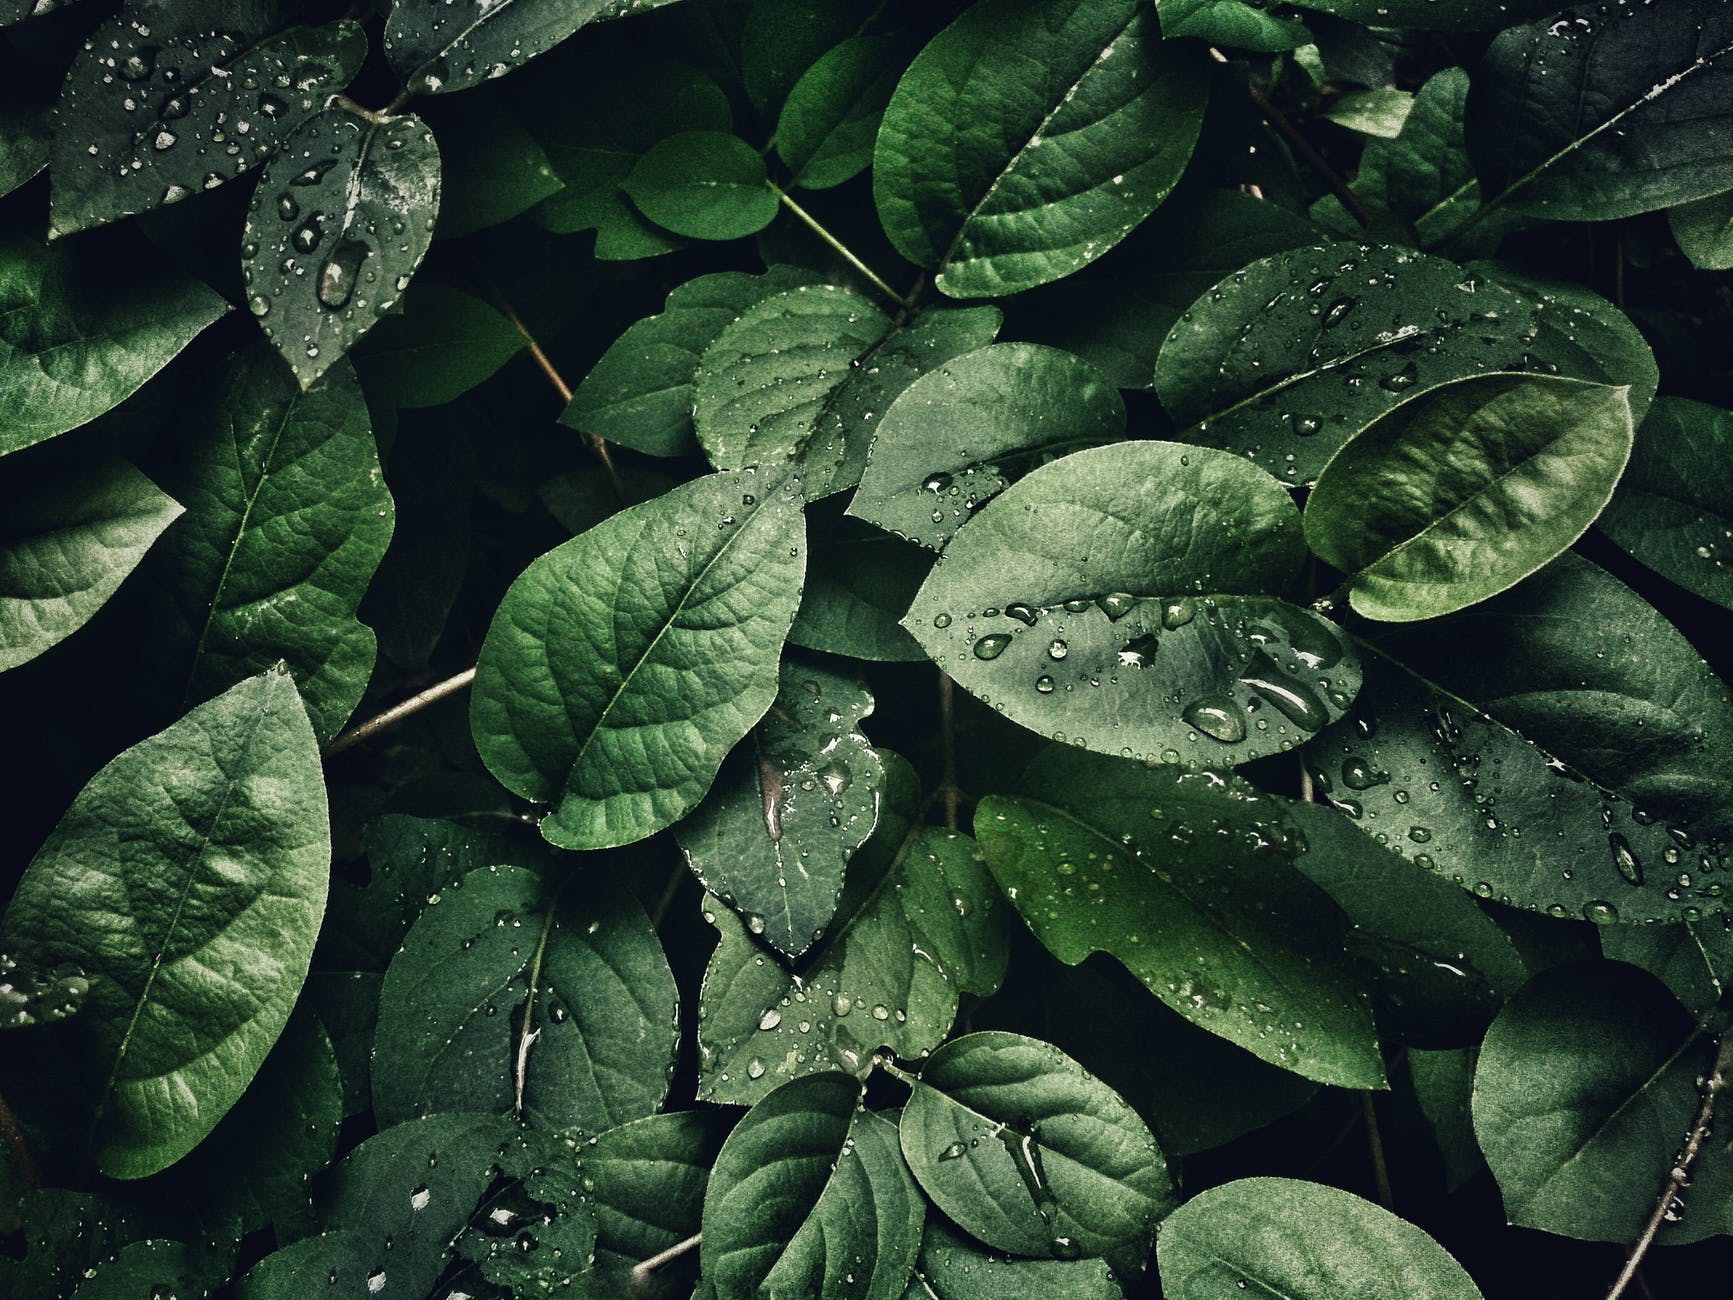 green leafs covered in rainwater